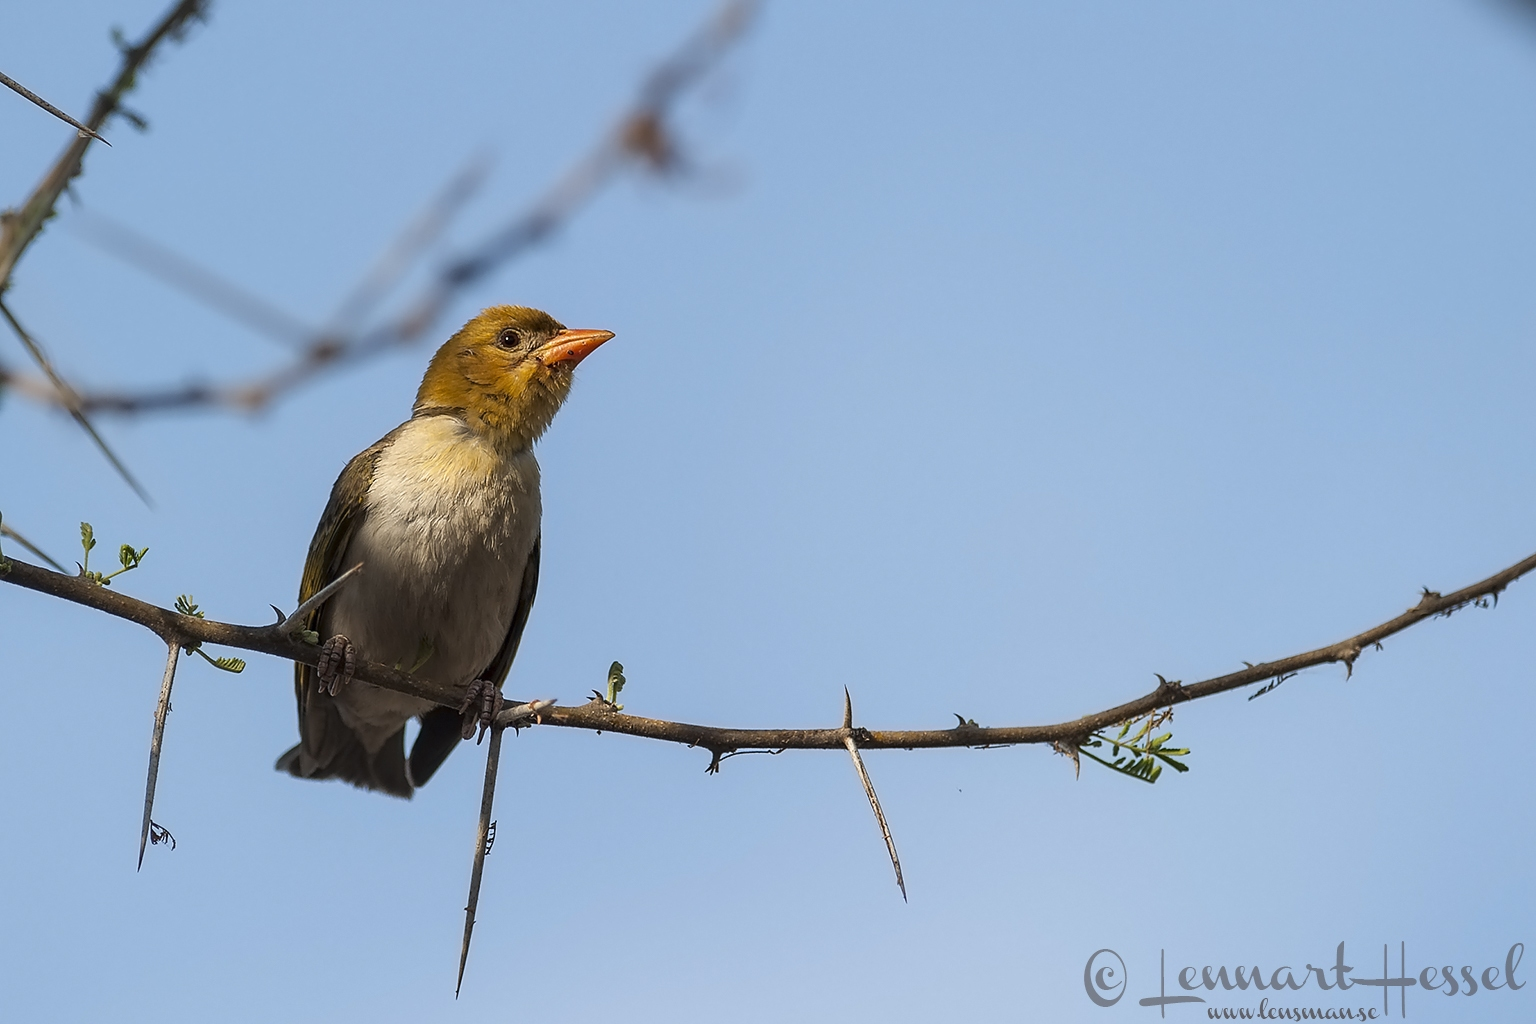 Red-headed Weaver at Thamalakane River Lodge, Botswana